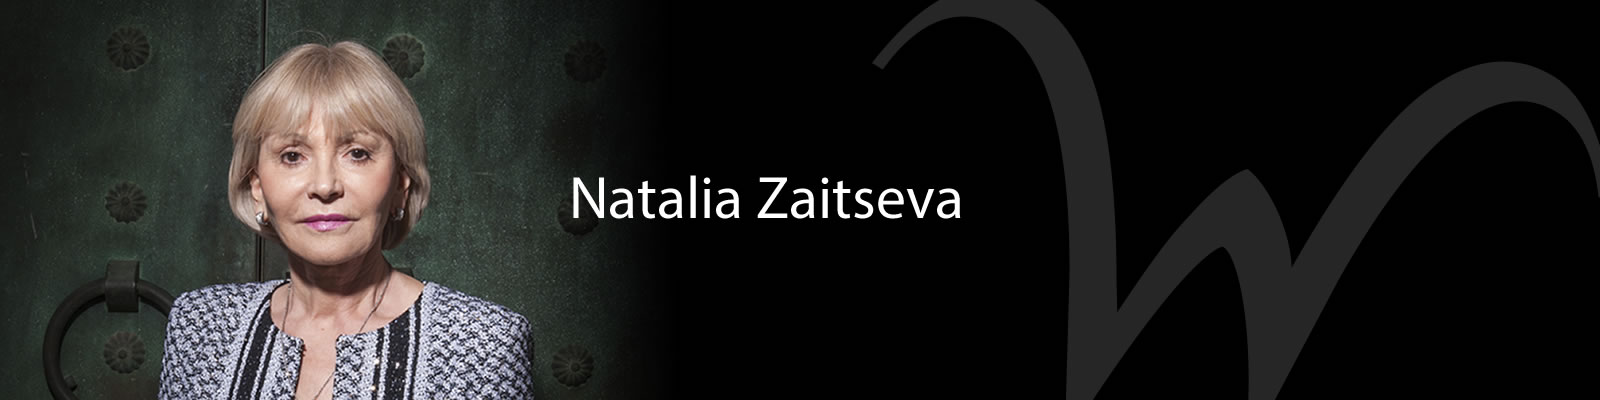 Photo of flowers with inductee name Natalia Zaitseva